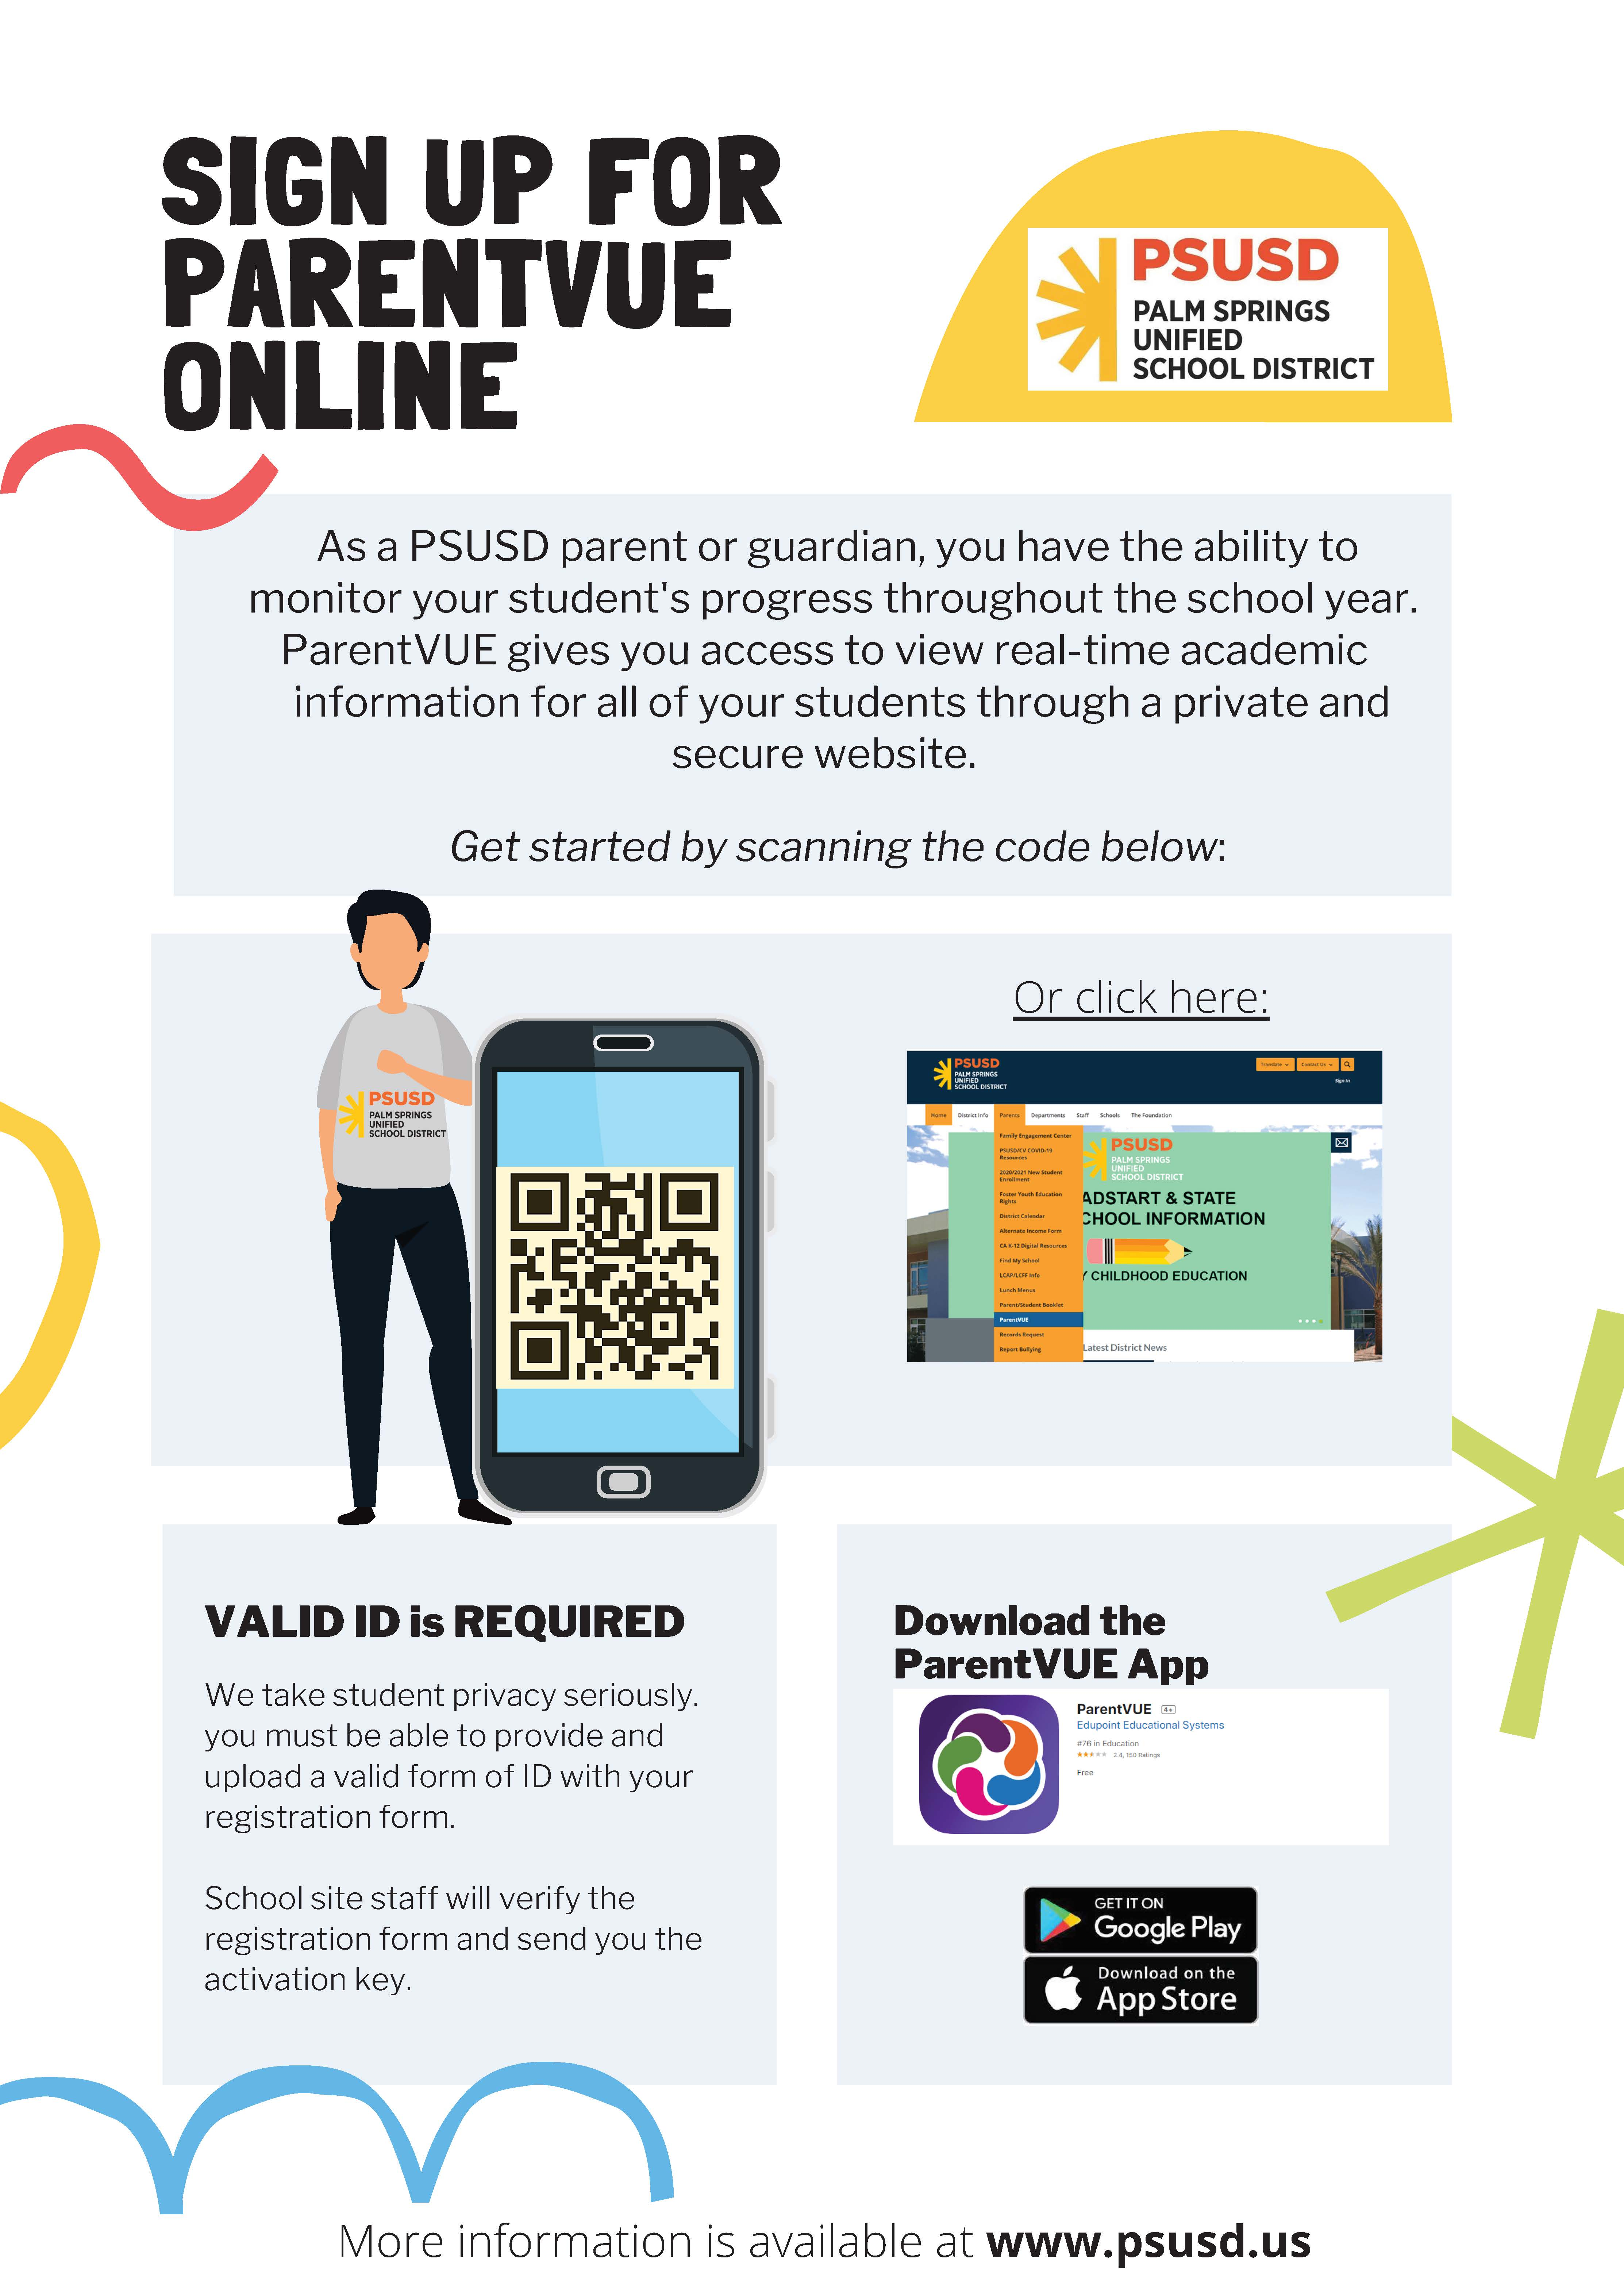 Sign Up for ParentVue Online